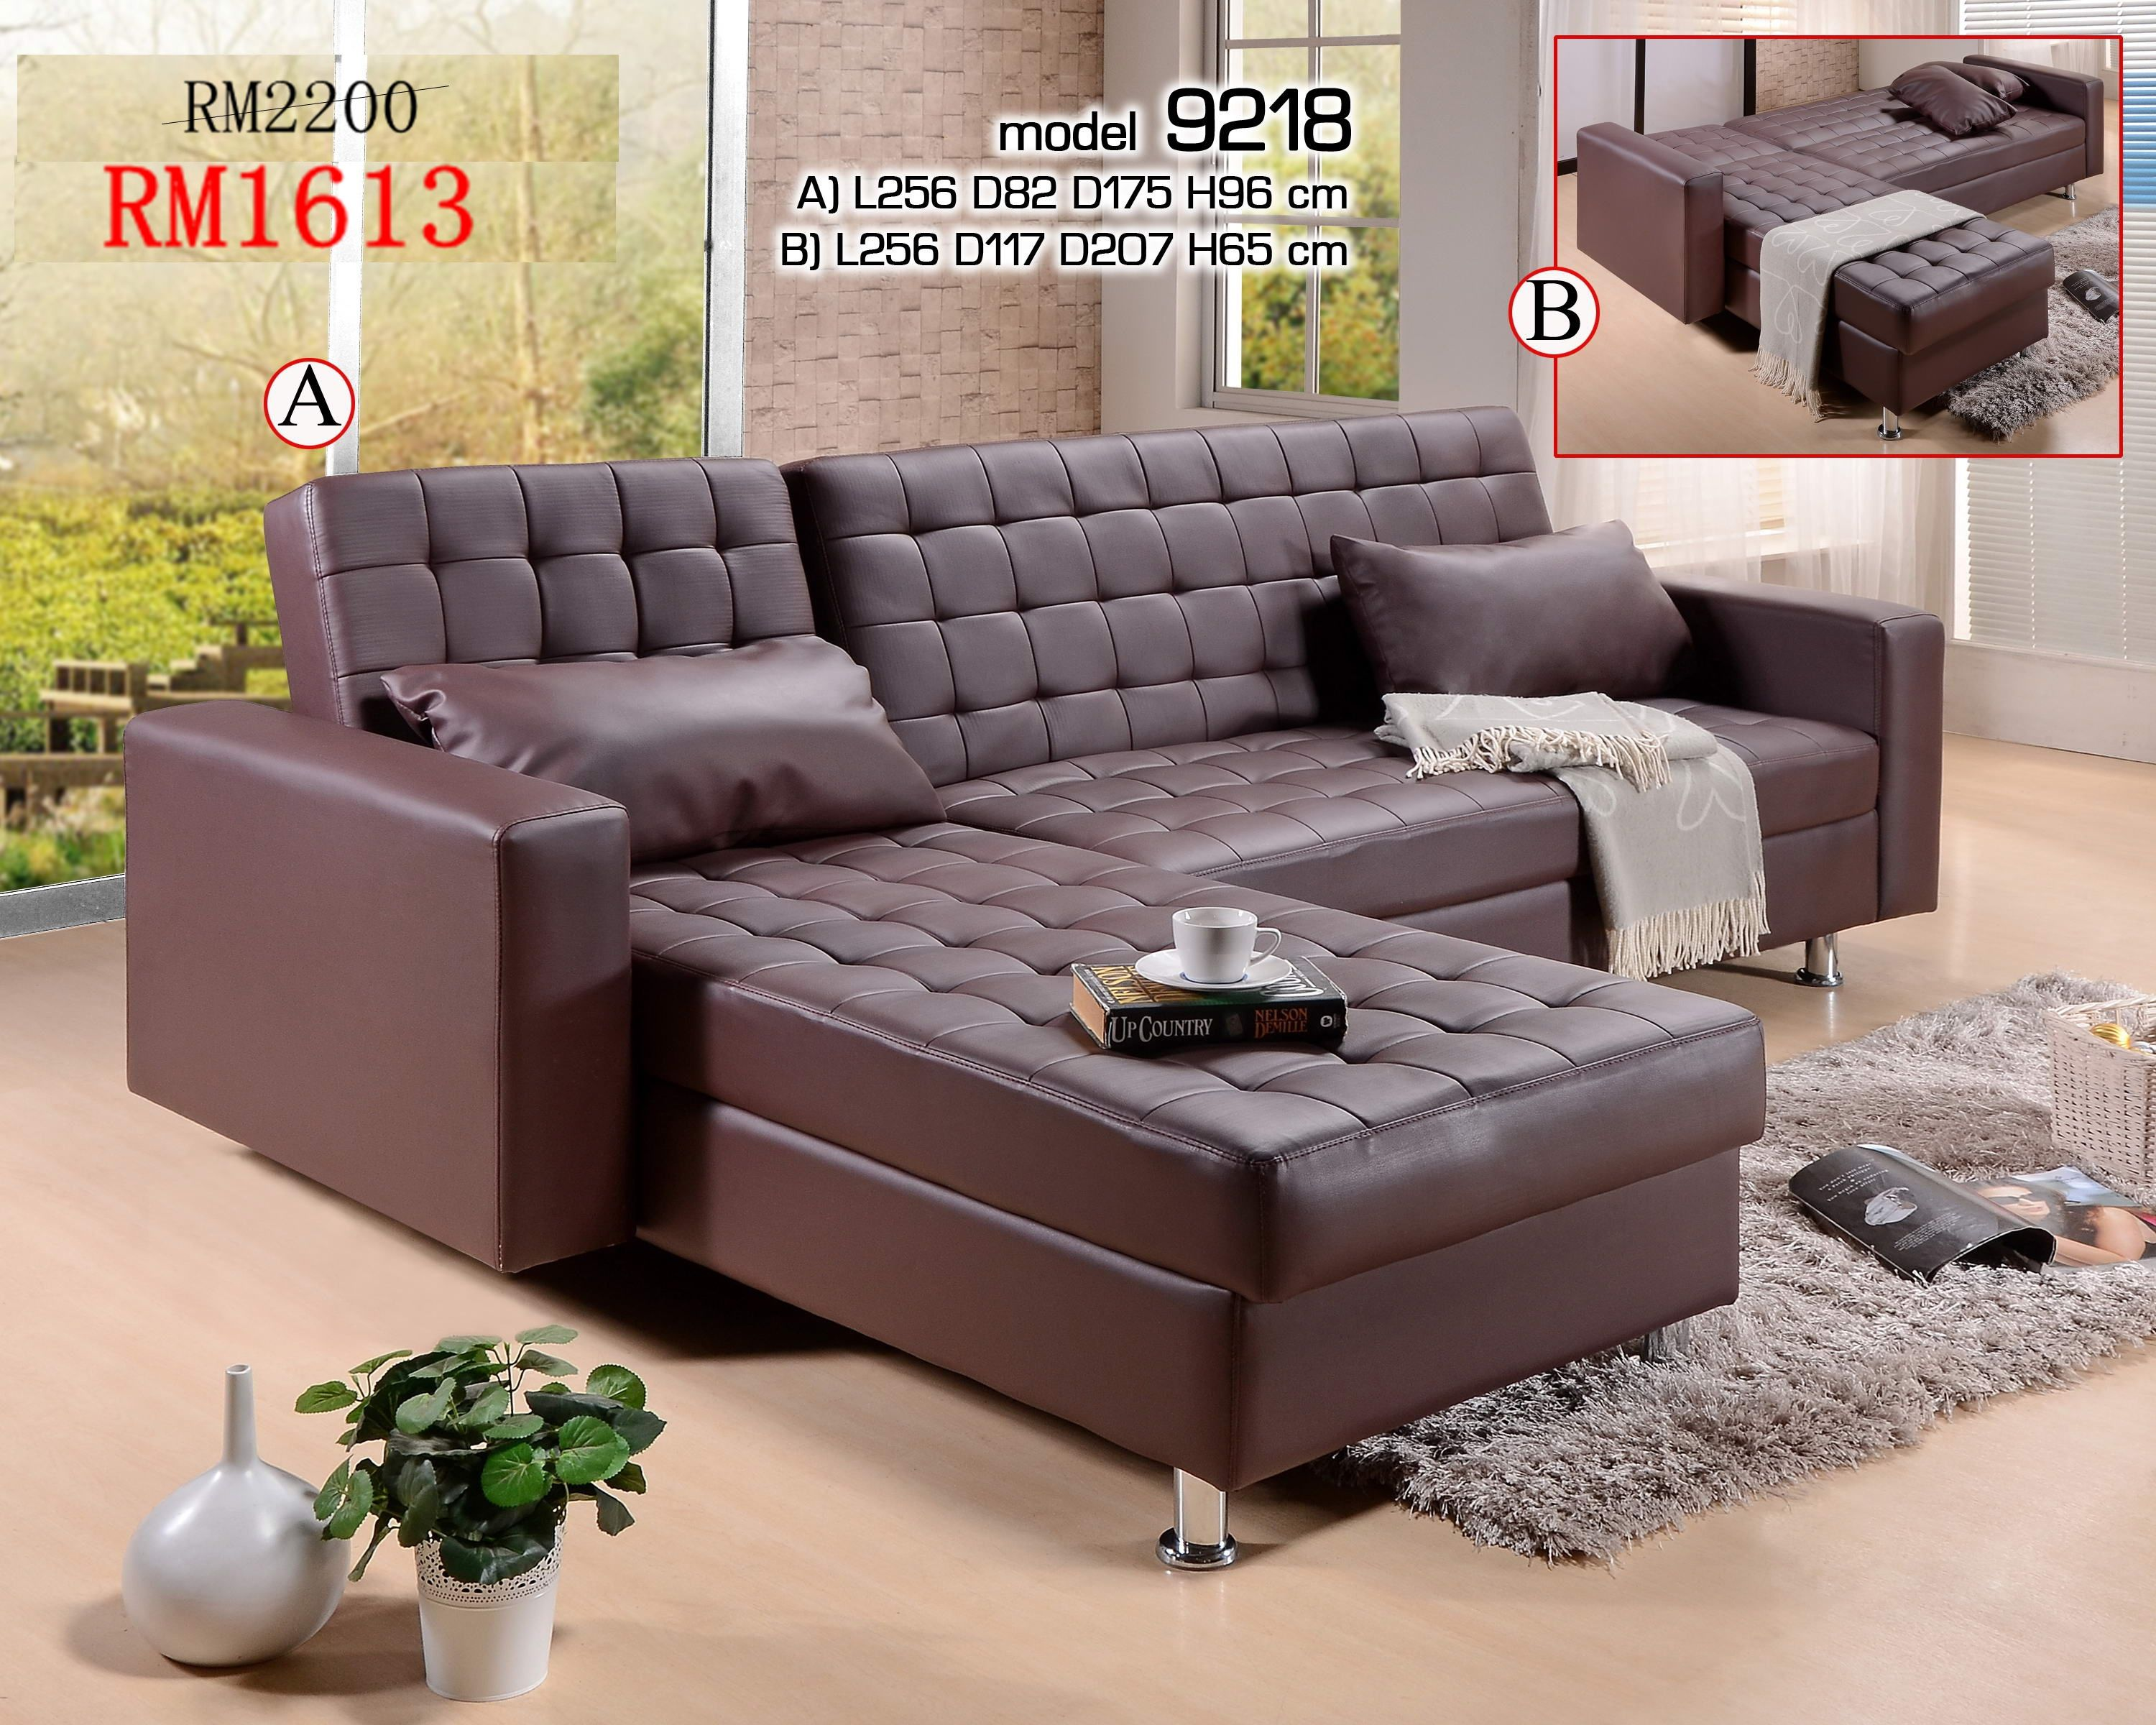 L Shaped Sofa Bed Sale In Malaysia Katil